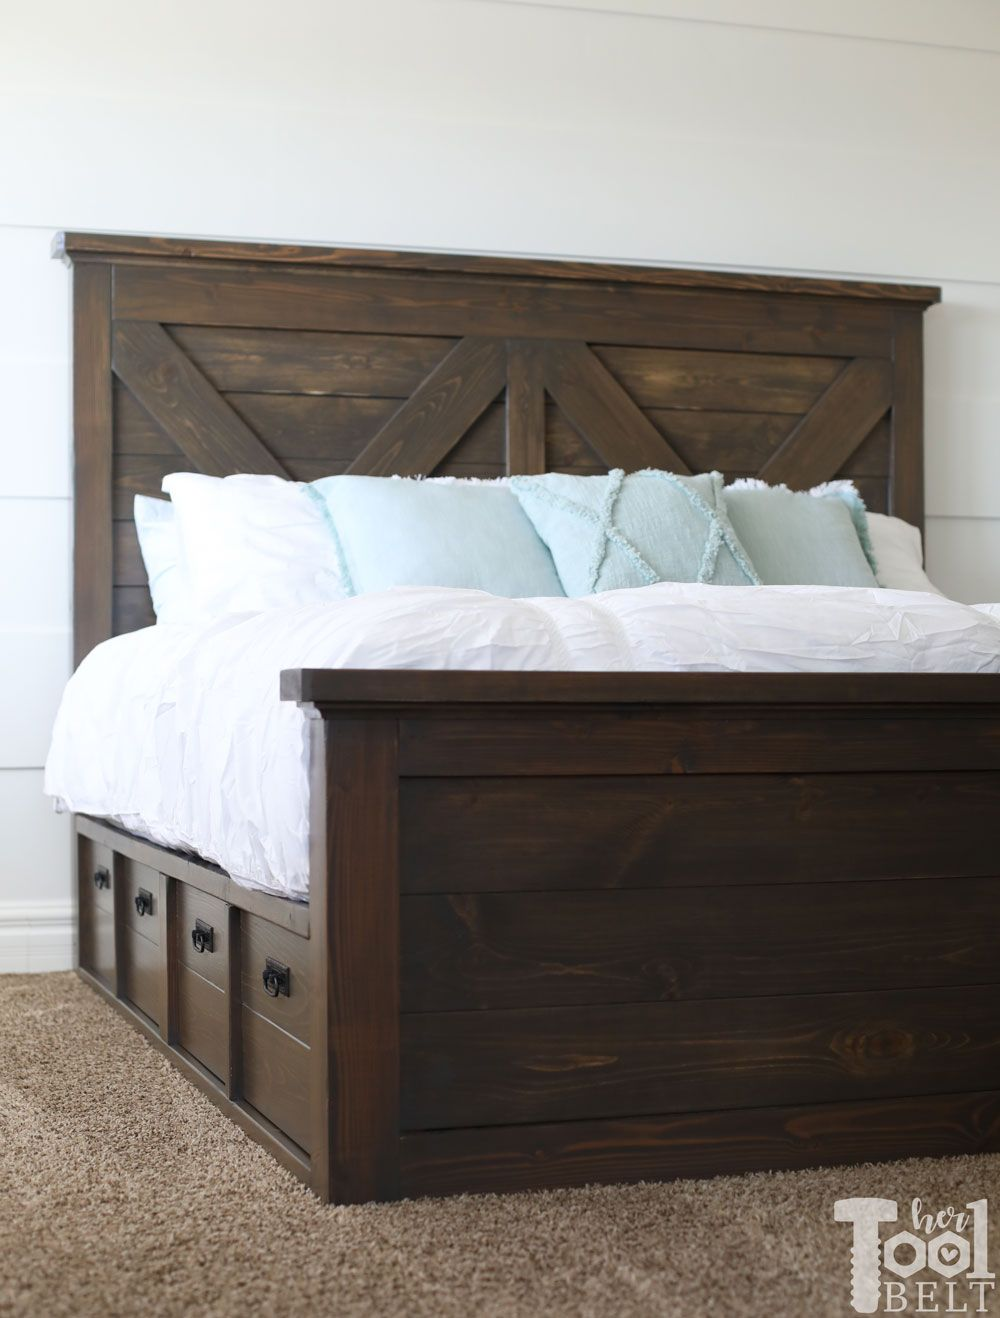 King X Barn Door Farmhouse Bed Plans Her Tool Belt Farmhouse Bed Frame King Bed Frame Bed Frame Plans